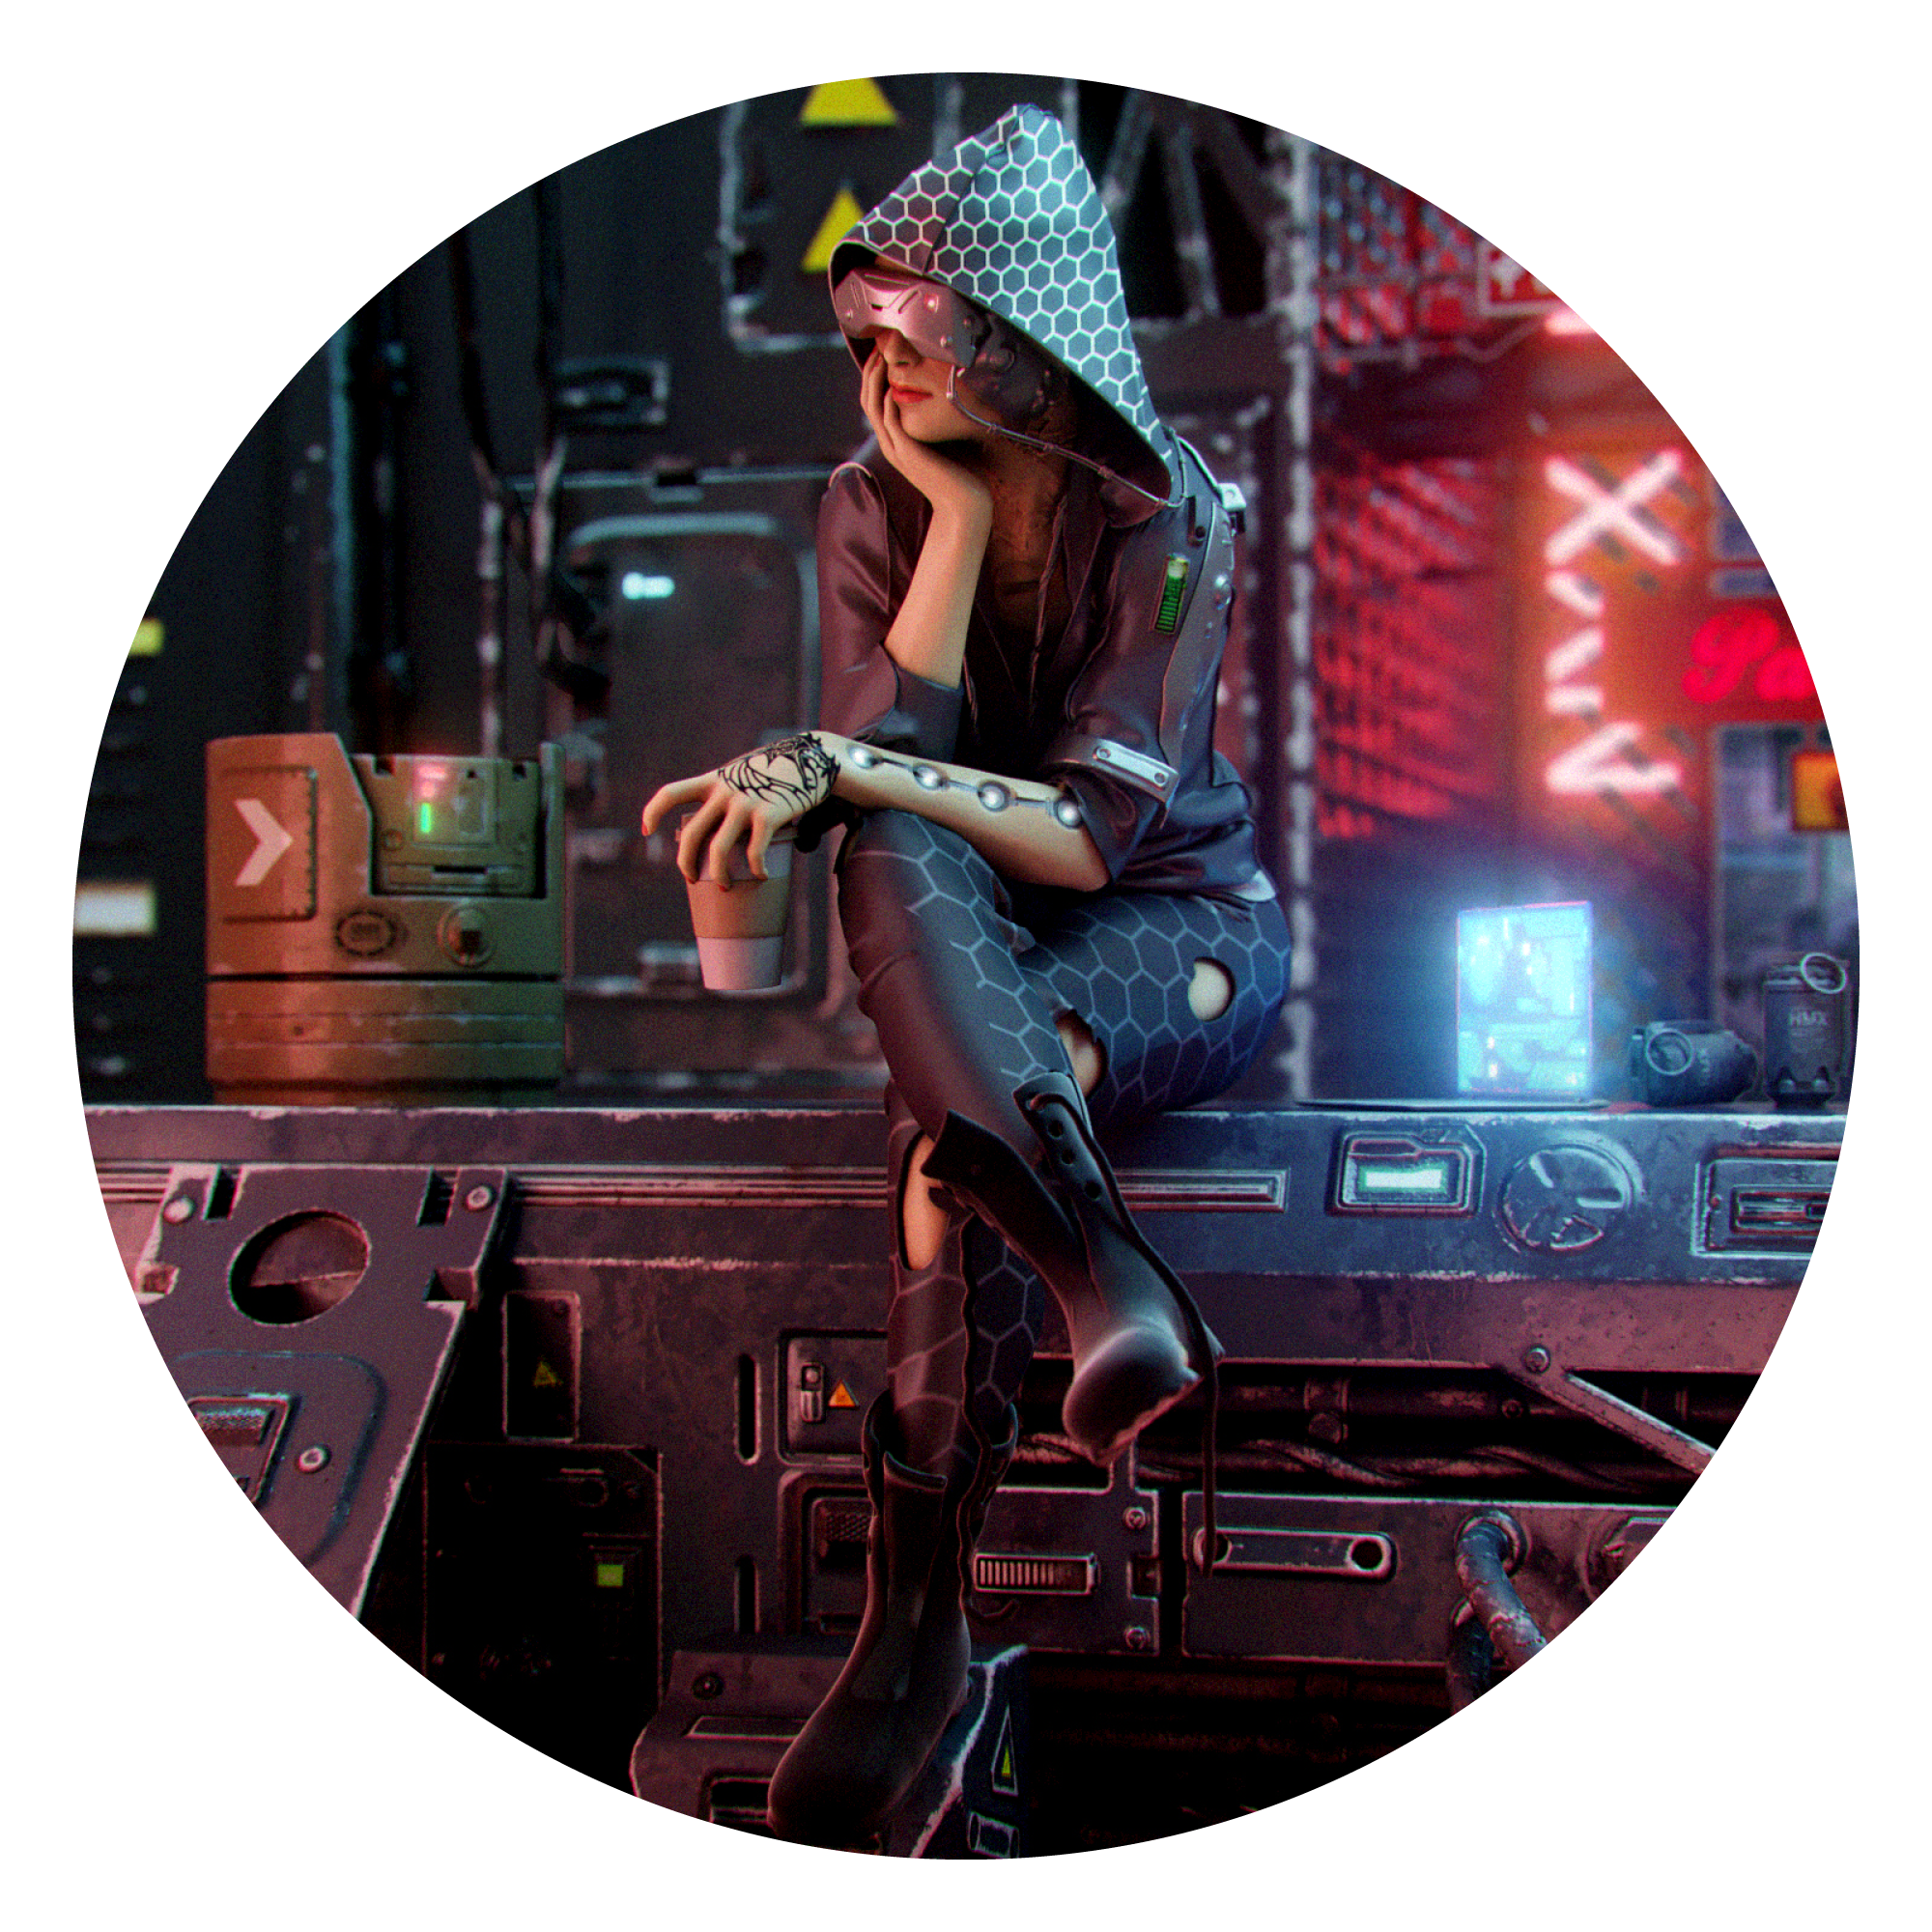 3D render by Volkan Kacar of Cyberpunk girl sitting with a coffee in hand